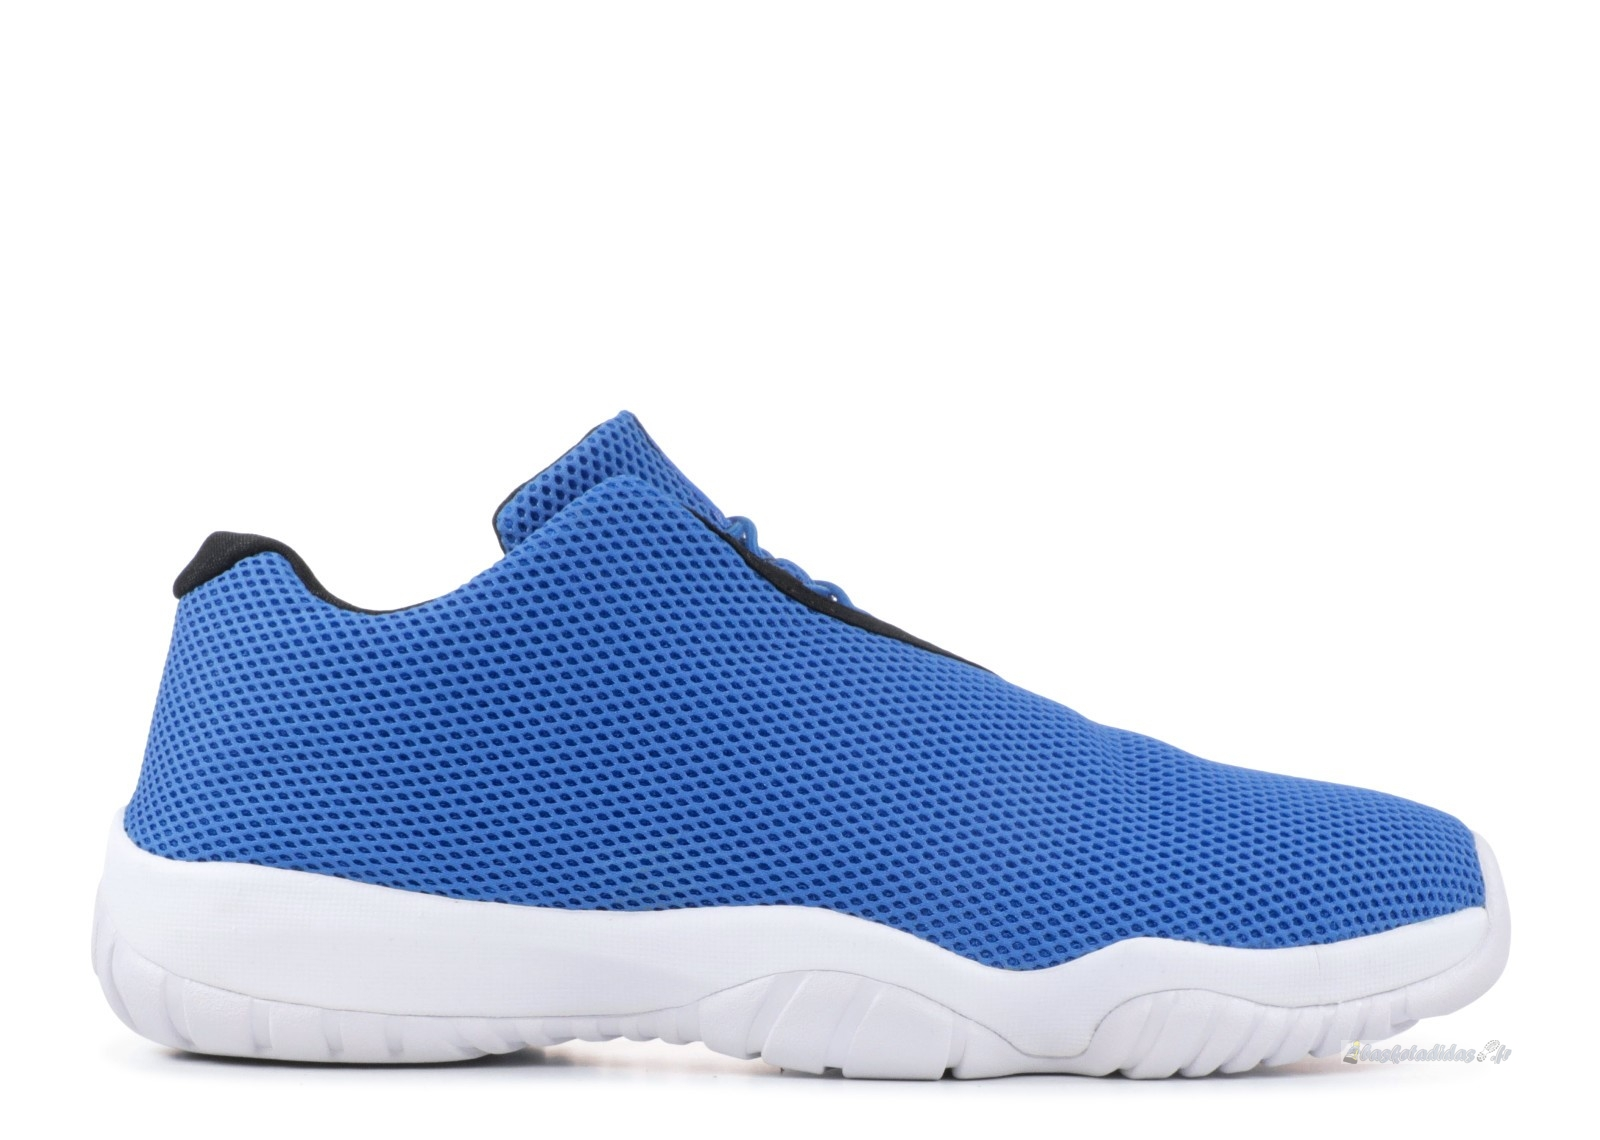 Chaussure de Basket Air Jordan Future Low Bleu Blanc 3 (718948-400)